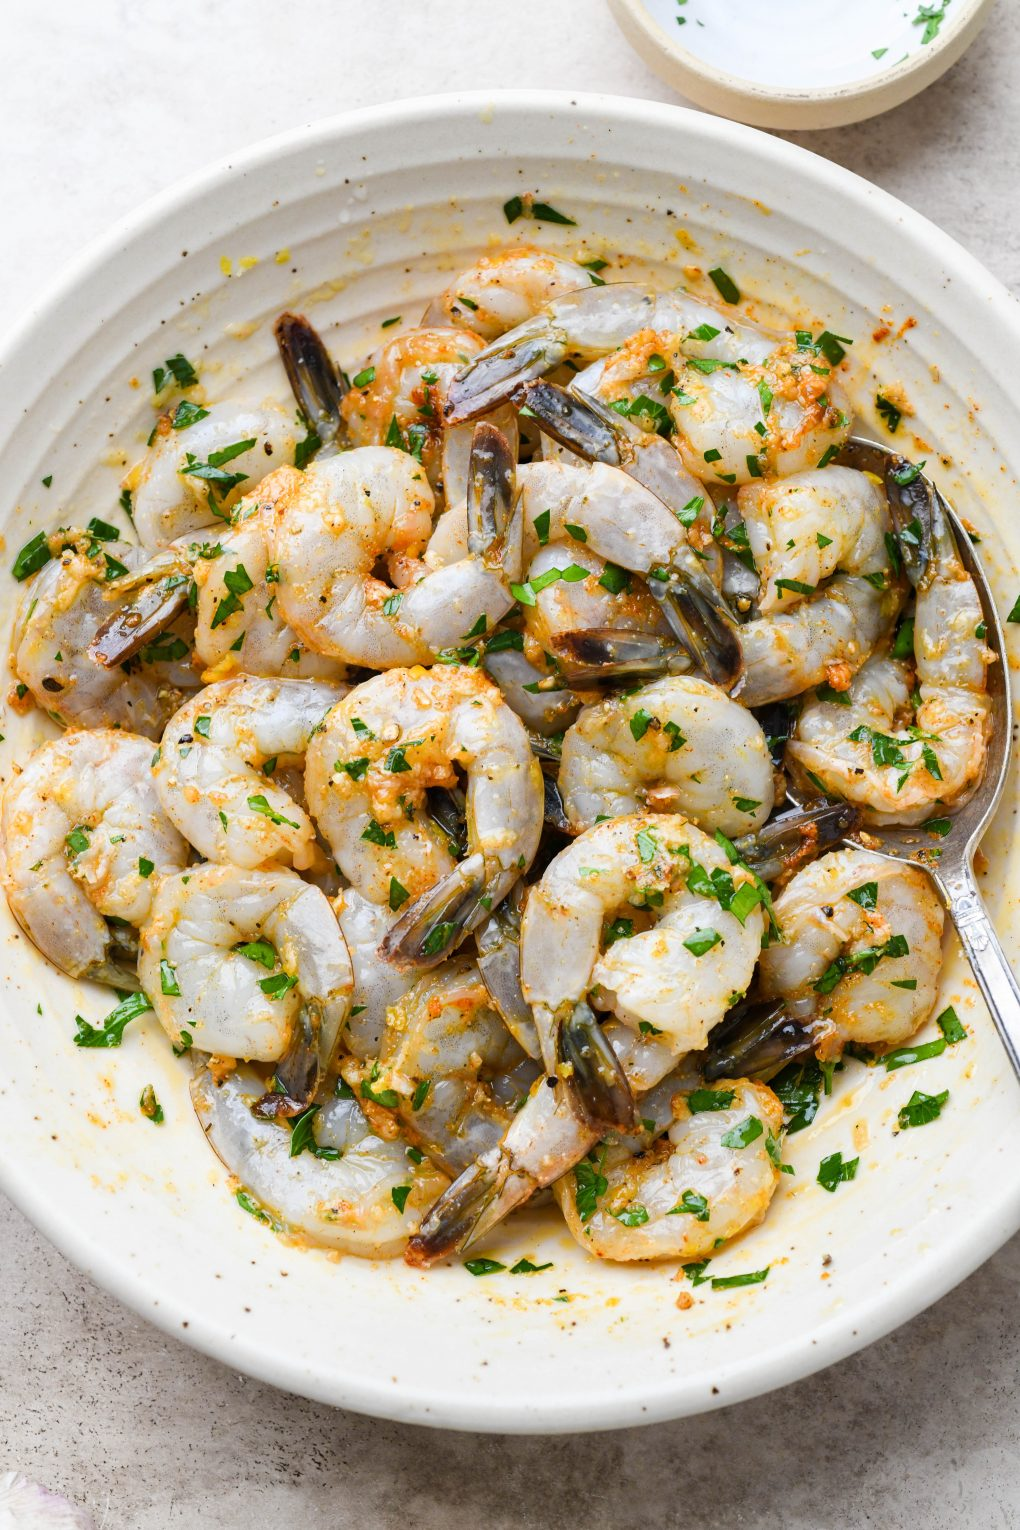 Overhead shot of a large shallow bowl with raw tail on shrimp, tossed together with all the ingredients for the zesty marinade - parsley, spices, lemon zest, lemon juice, and garlic.